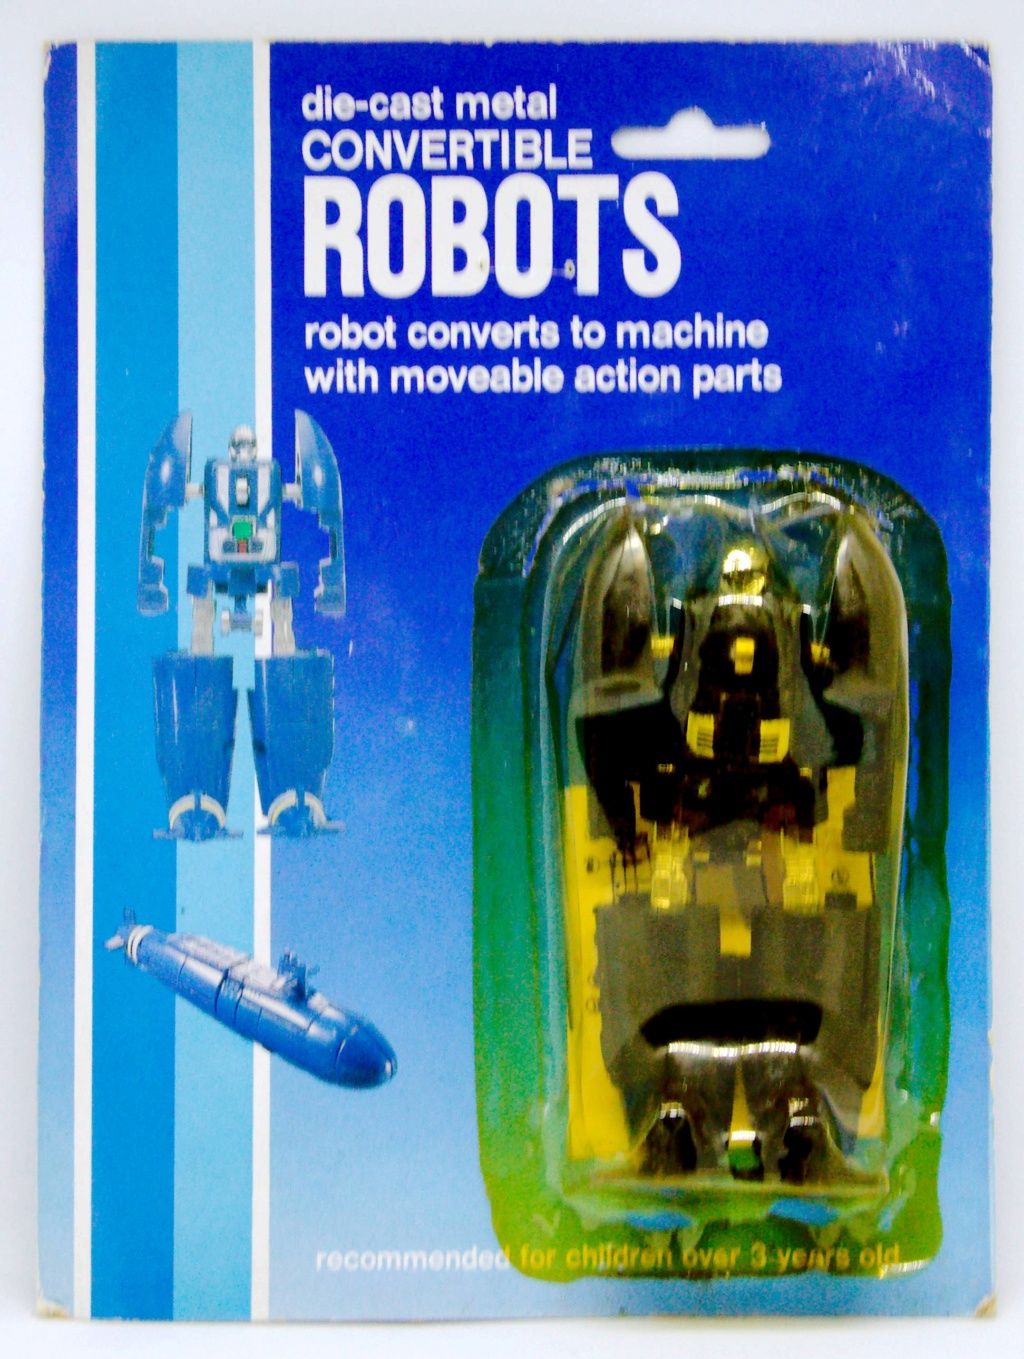 Pilgrim's collection (Gobots, Transformers...) - Page 16 Img_7717